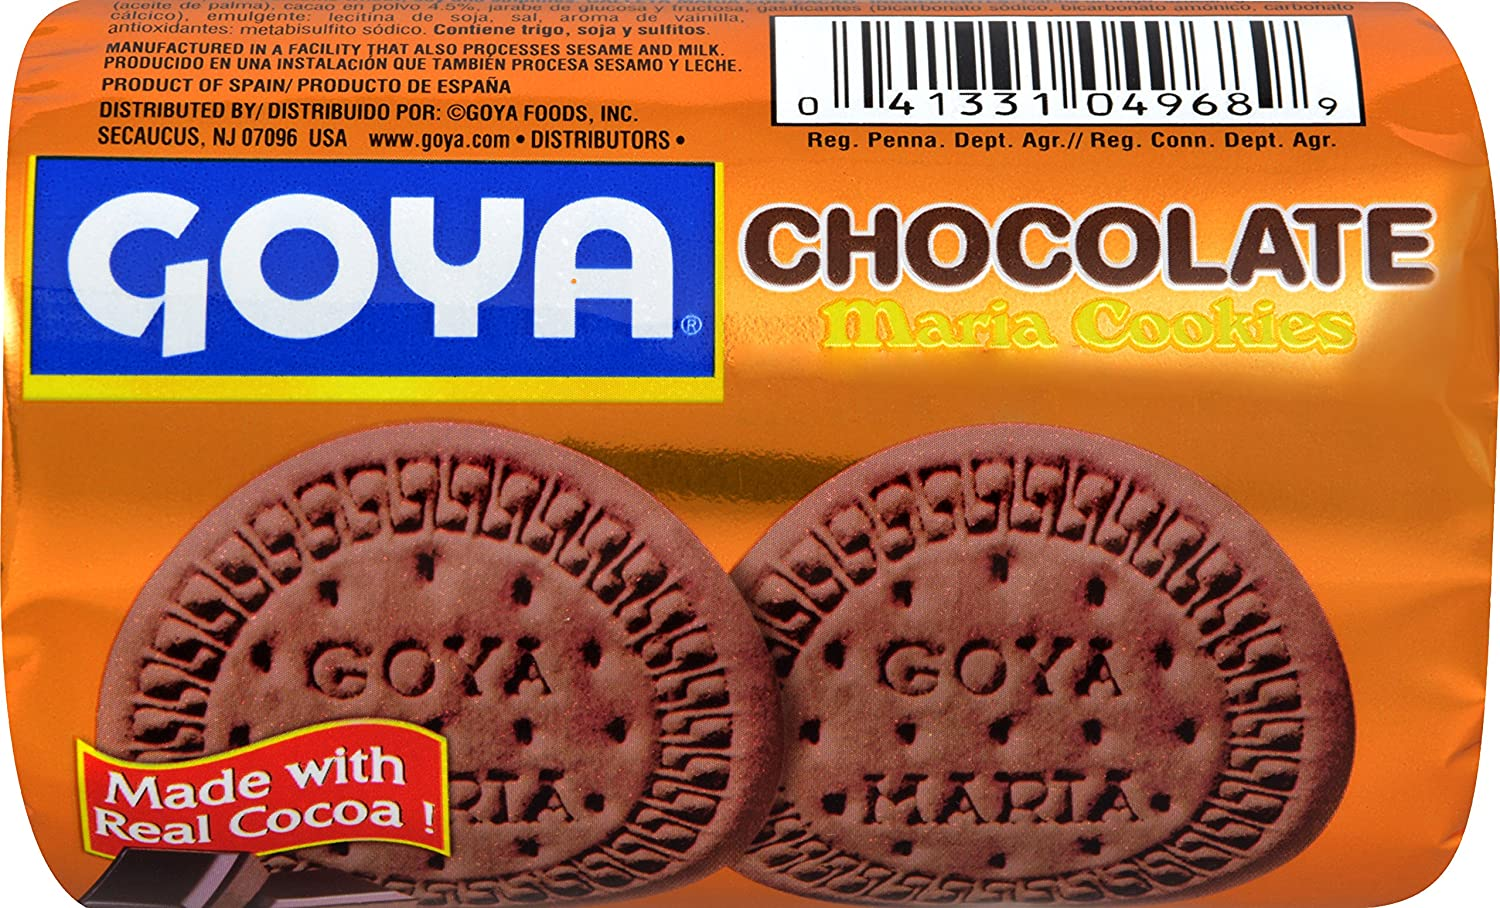 Amazon.com : Goya Foods Maria Cookies Chocolate, 3.5 Ounce (Pack of 32) : Grocery & Gourmet Food